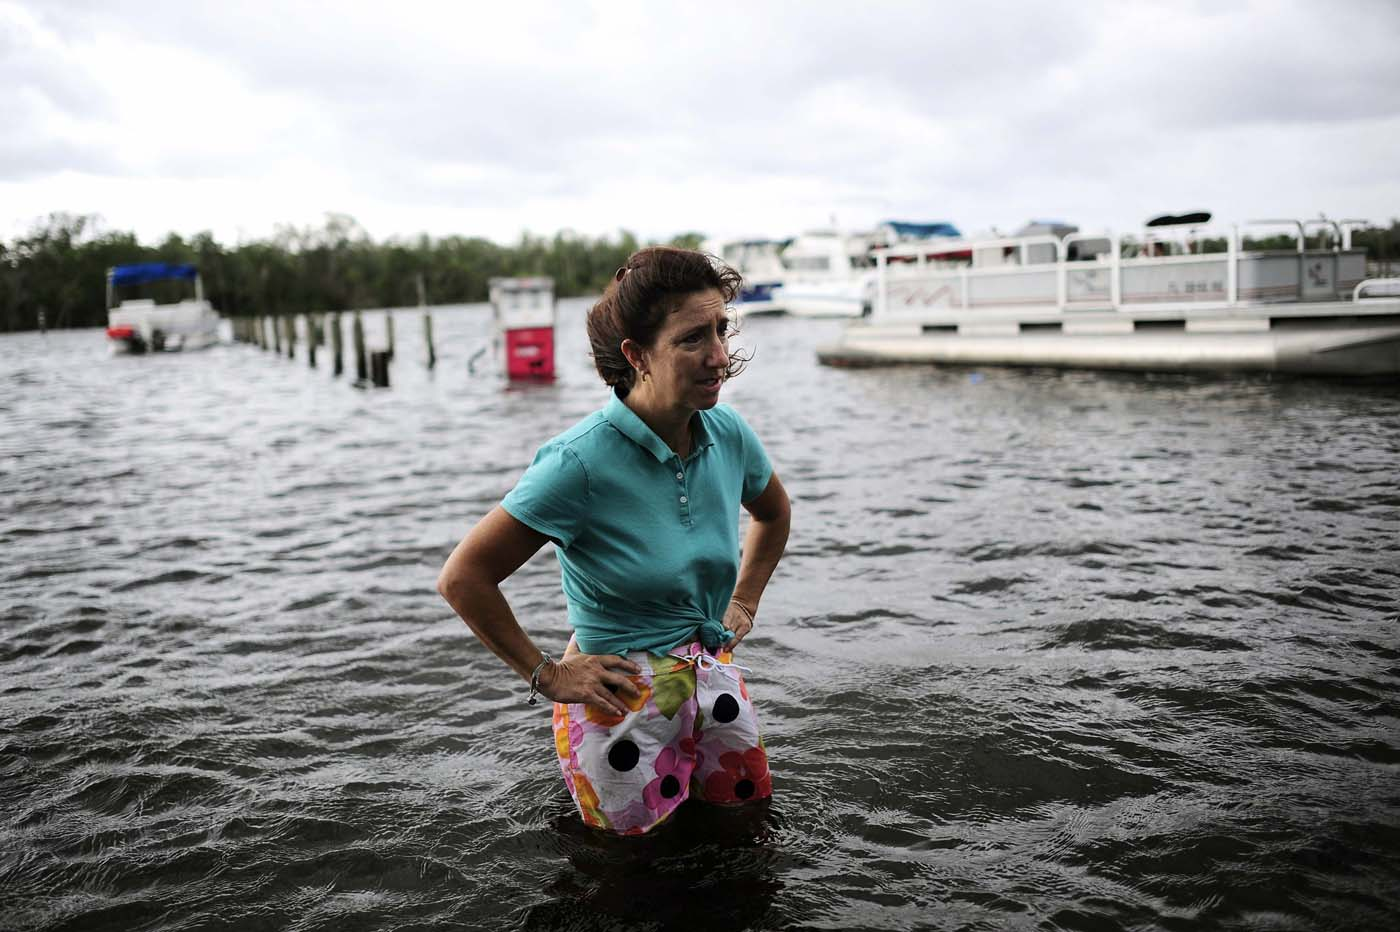 Doreen Mylin, owner of the Magic Manatee Marina, pauses to inspect the damage as the water associated with Tropical Storm Debby rises and floods her business in Homosassa, Florida, June 26, 2012. (Brian Blanco/Reuters)